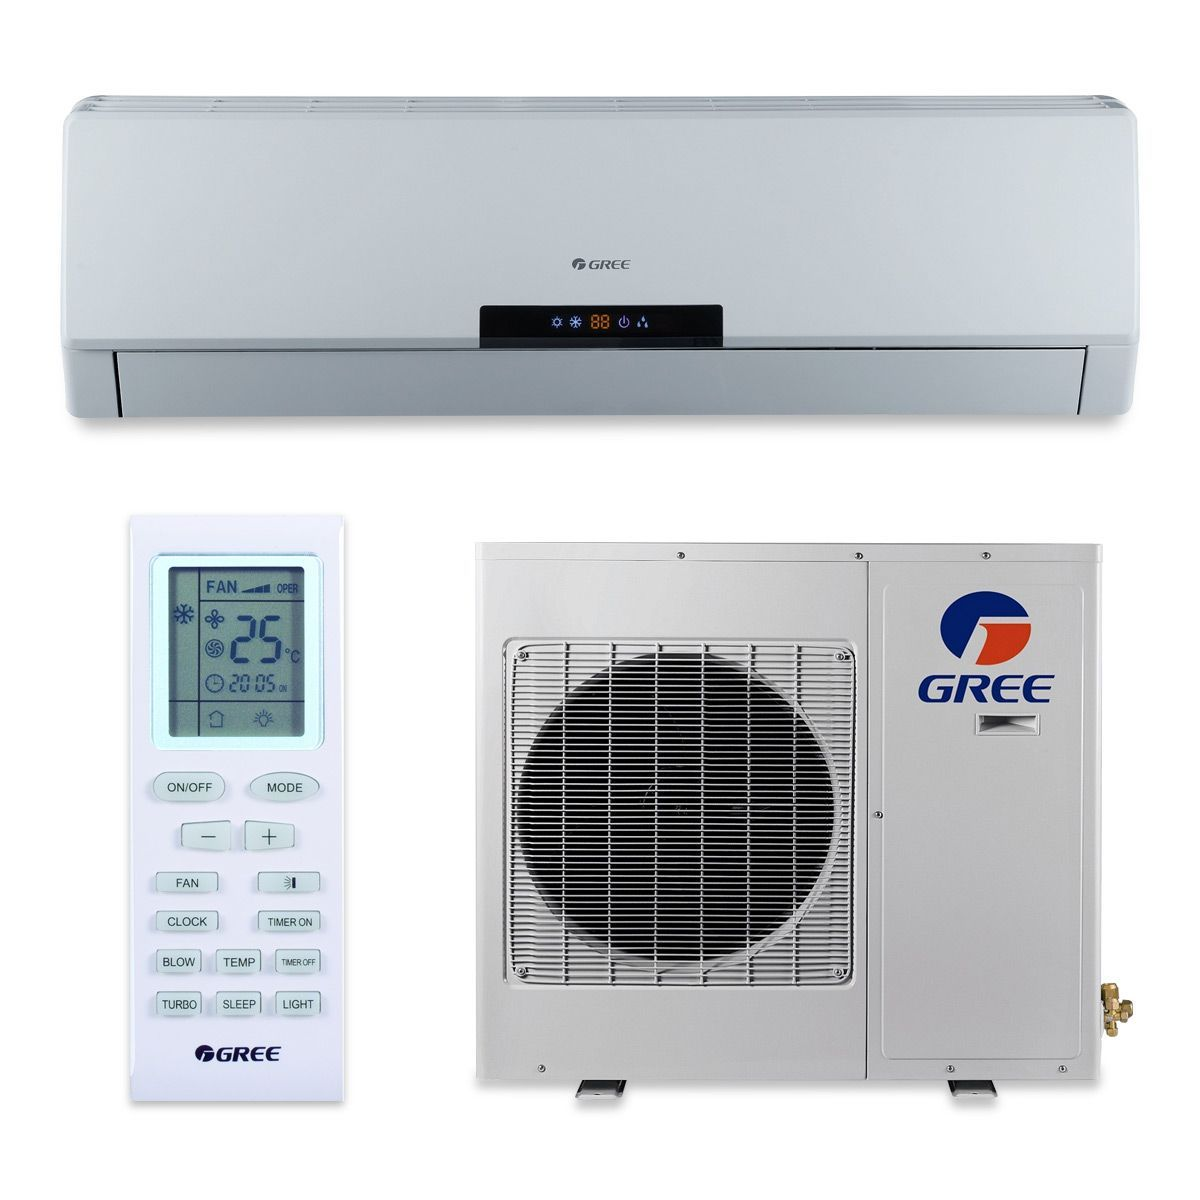 Gree 12 000 Btu 22 Seer Vireo Wall Mount Ductless Mini Split Air Conditioner Heat Pump 115v Ductless Mini Split Heat Pump Ductless